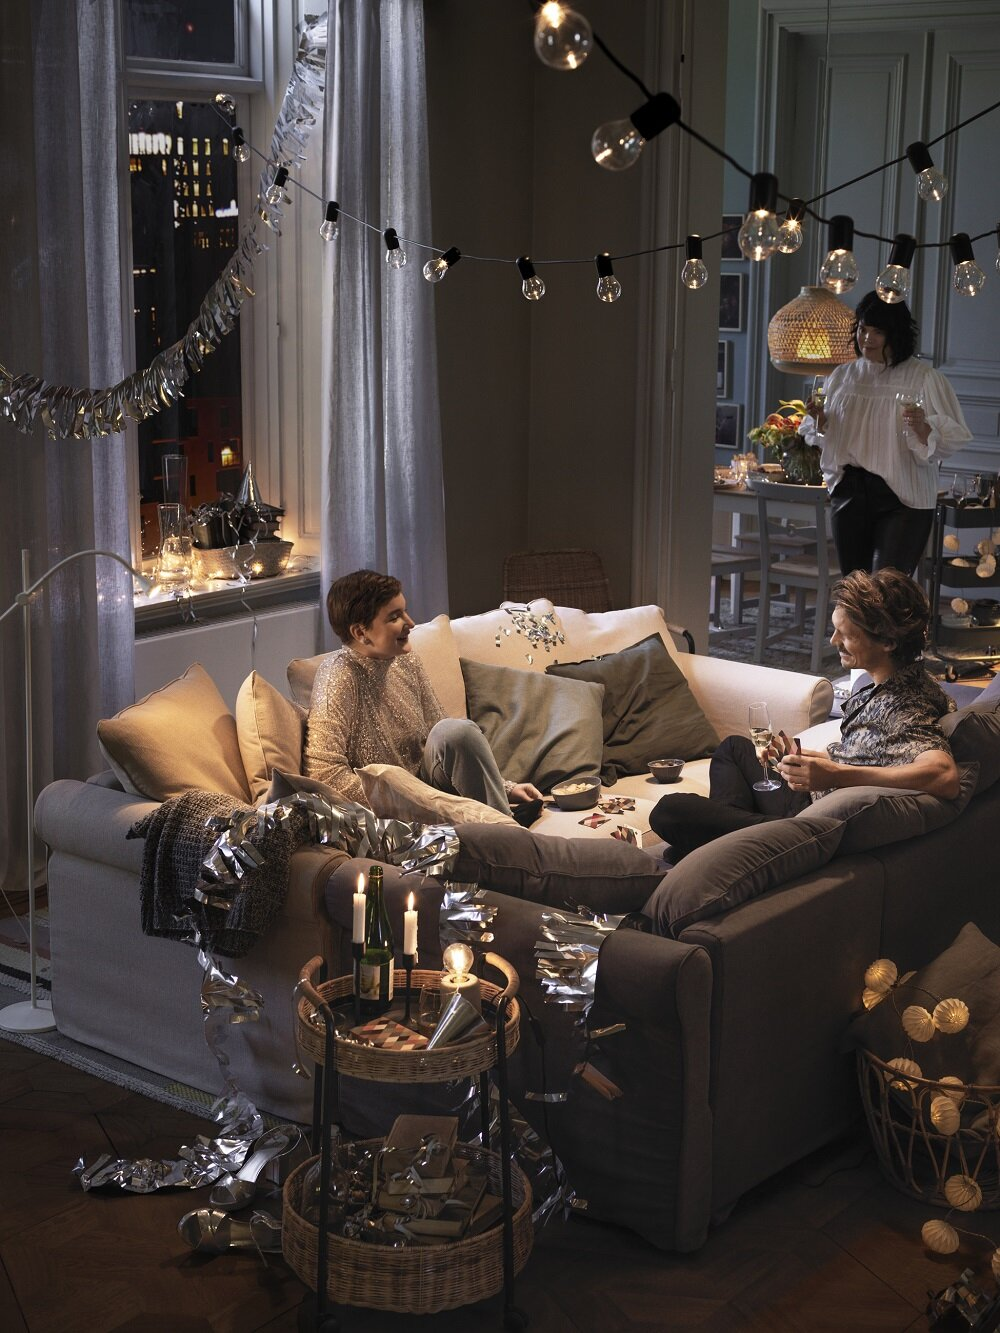 Christmas Pictures 2020 IKEA Christmas Collection 2020: Create Your Own Magical Moments